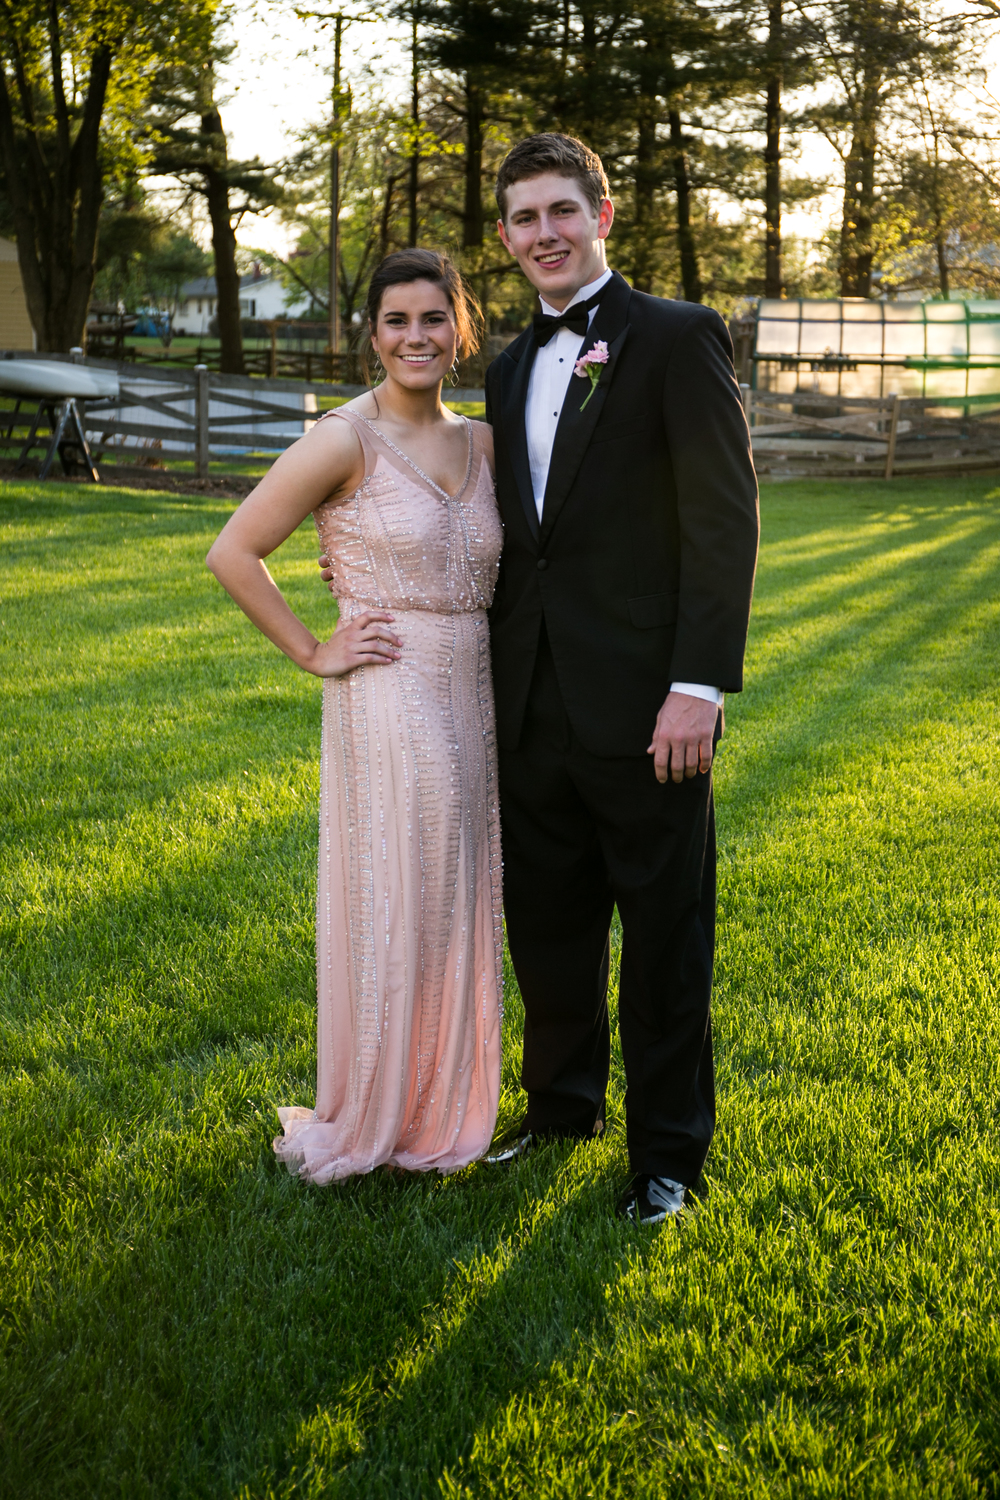 Mount-De-Sales-Pre-Prom-May-2014-102.jpg